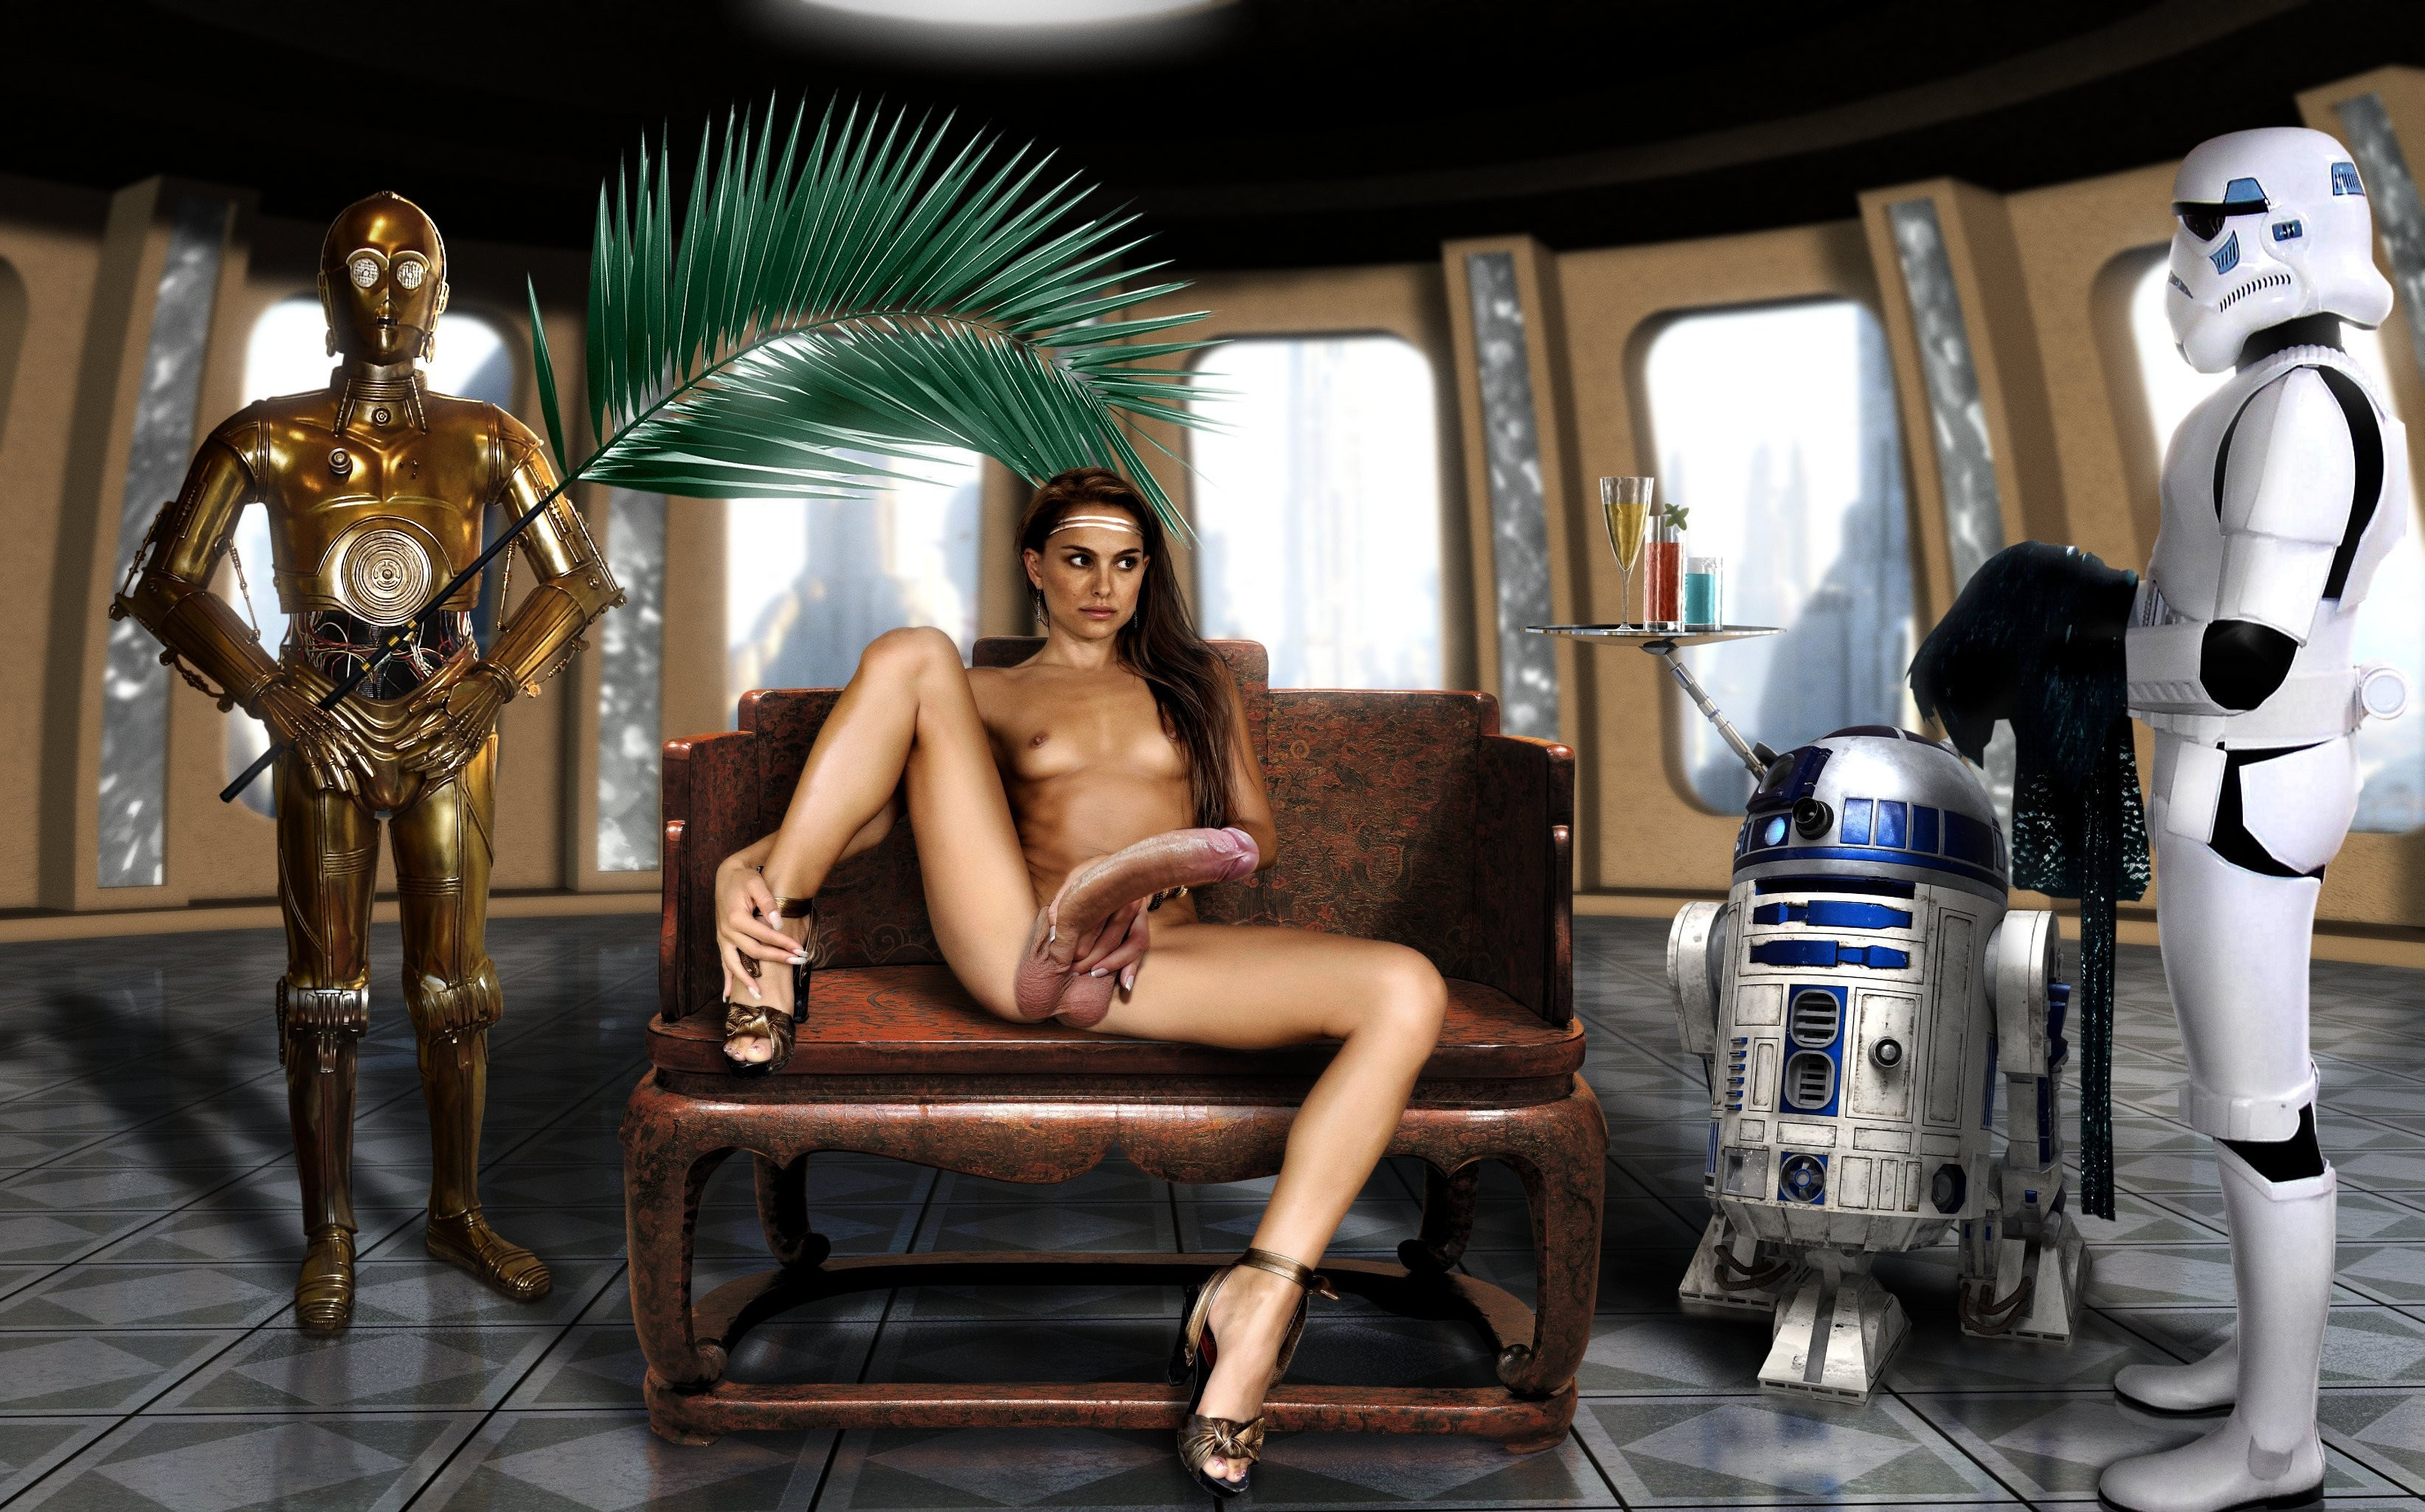 Natalie portman star wars porn, body bilding naked woman